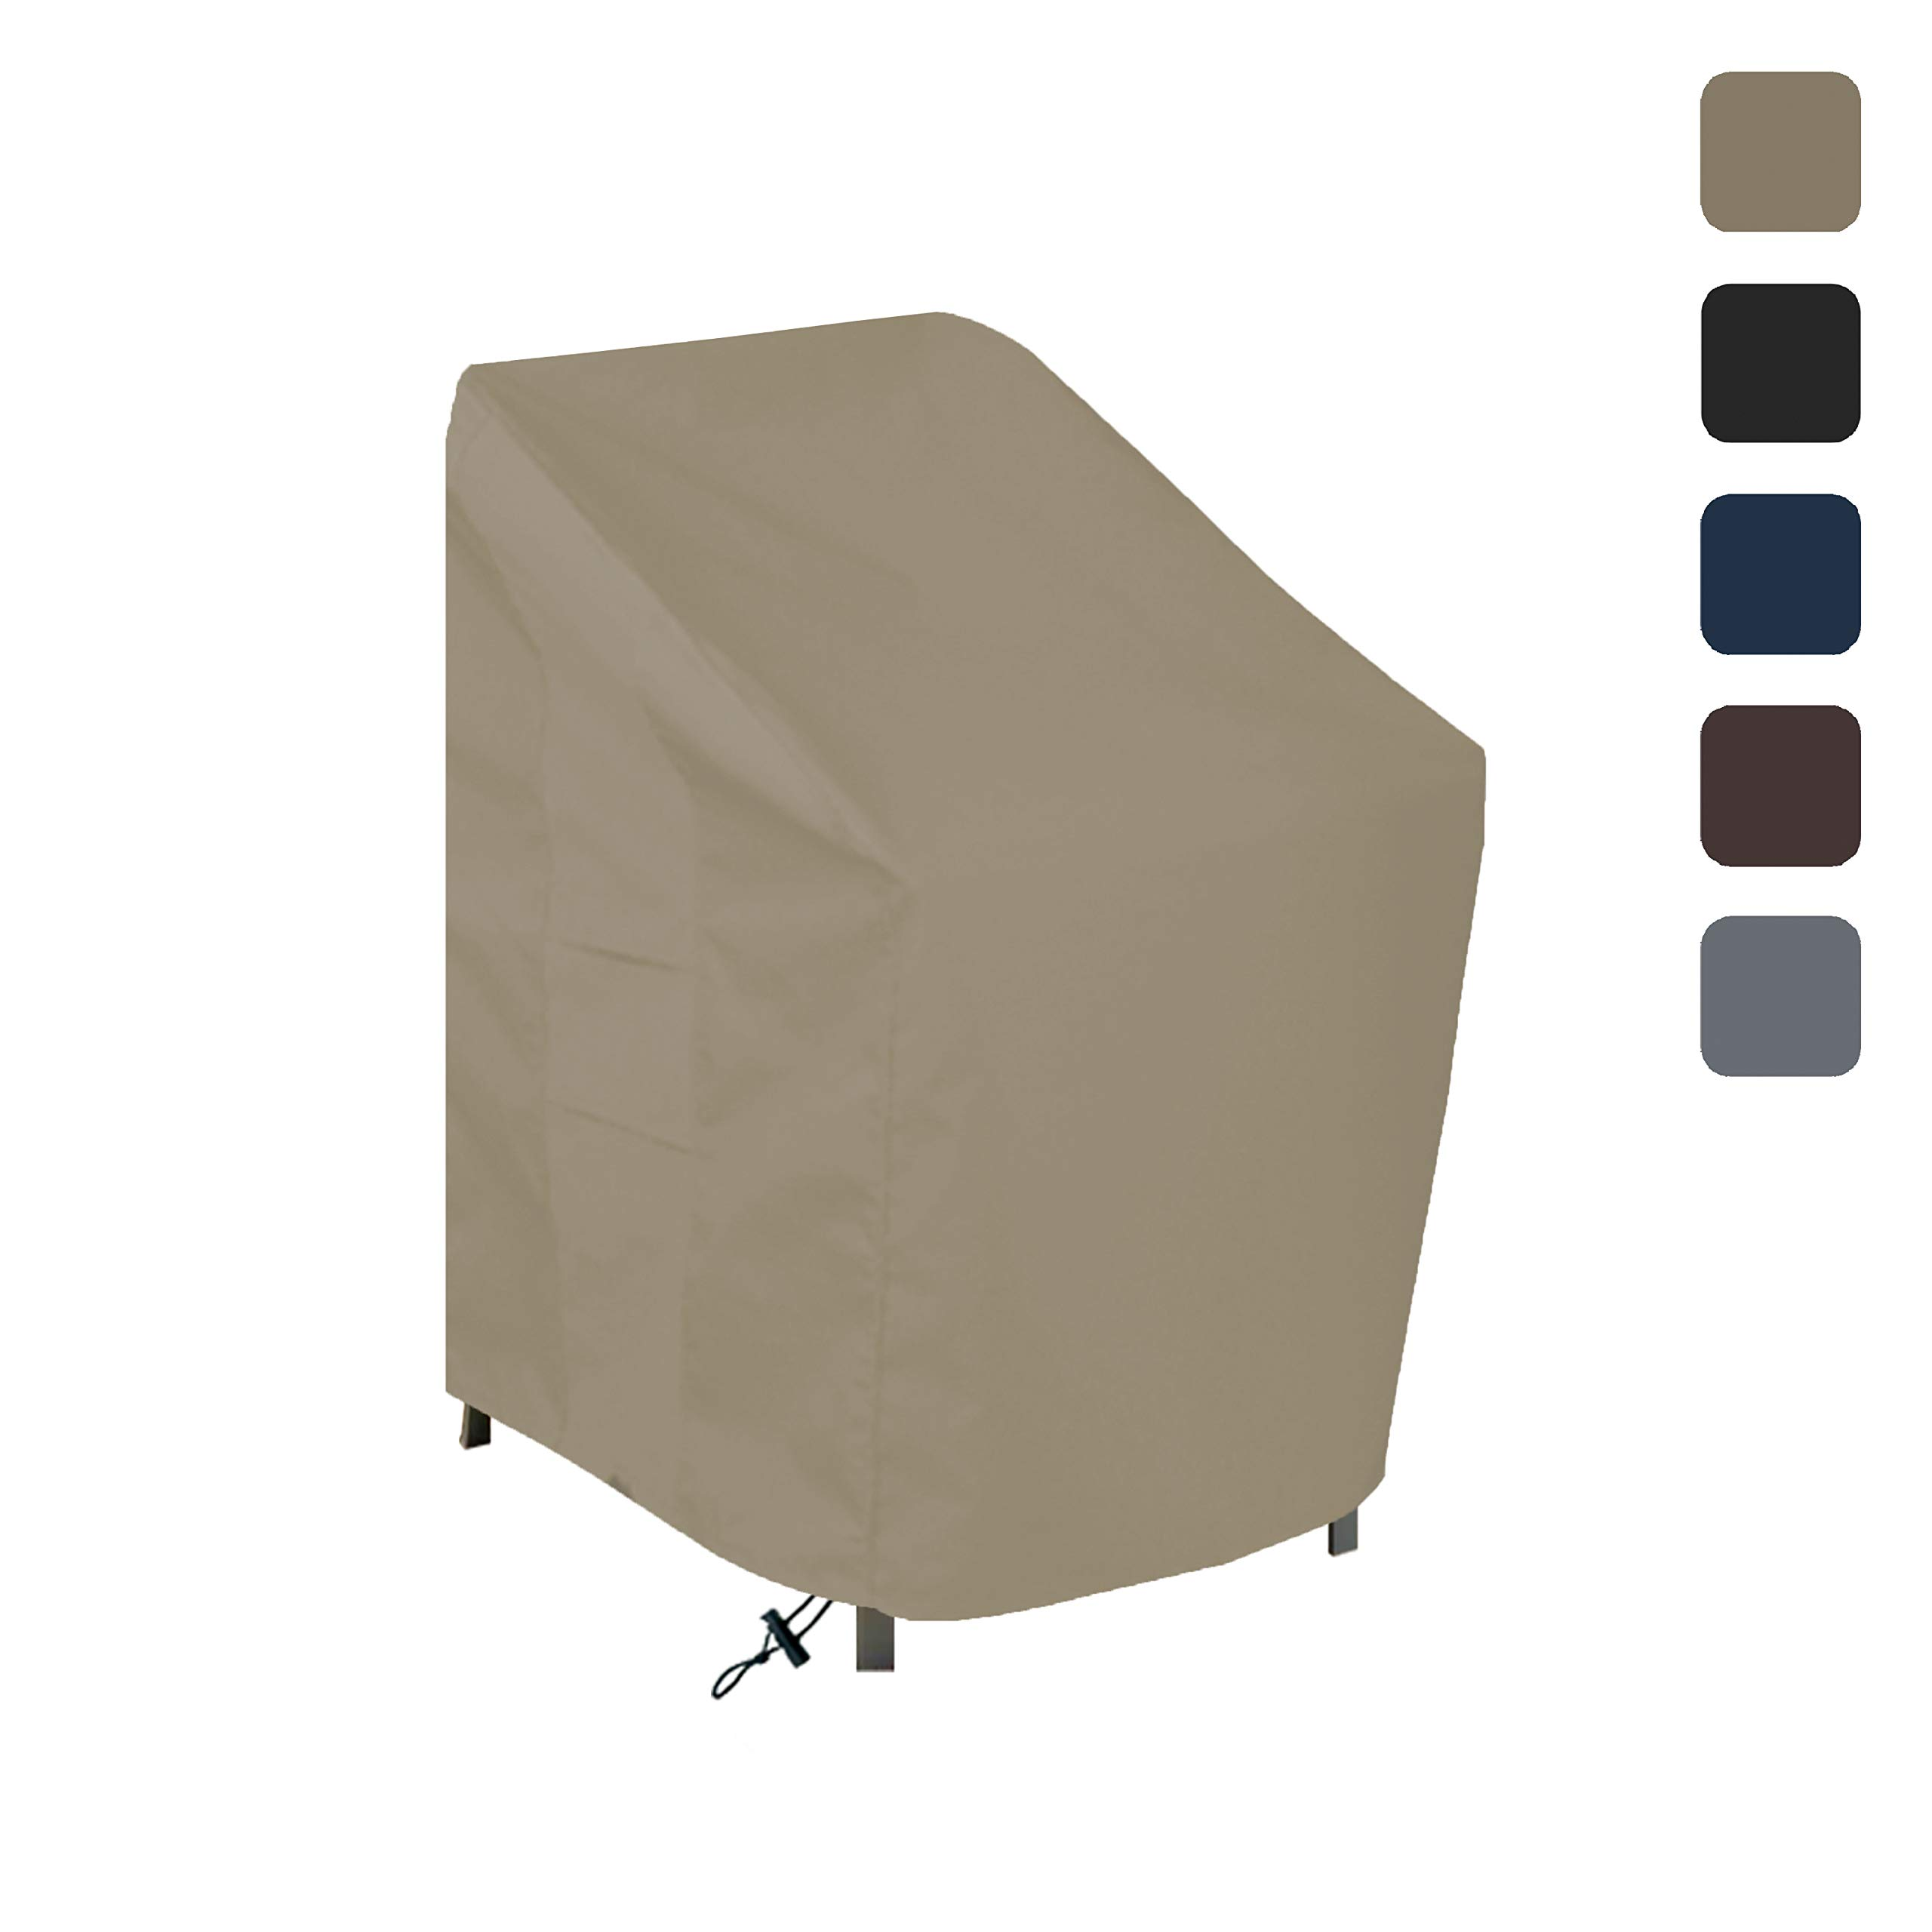 Outdoor Chair Cover 12 Oz Waterproof - 100% UV & Weather Resistant - Customize Cover - Stackable/Patio Chair Covers with Air Pockets and Drawstring for Sung fit (29W x 30D x 36H, Beige)